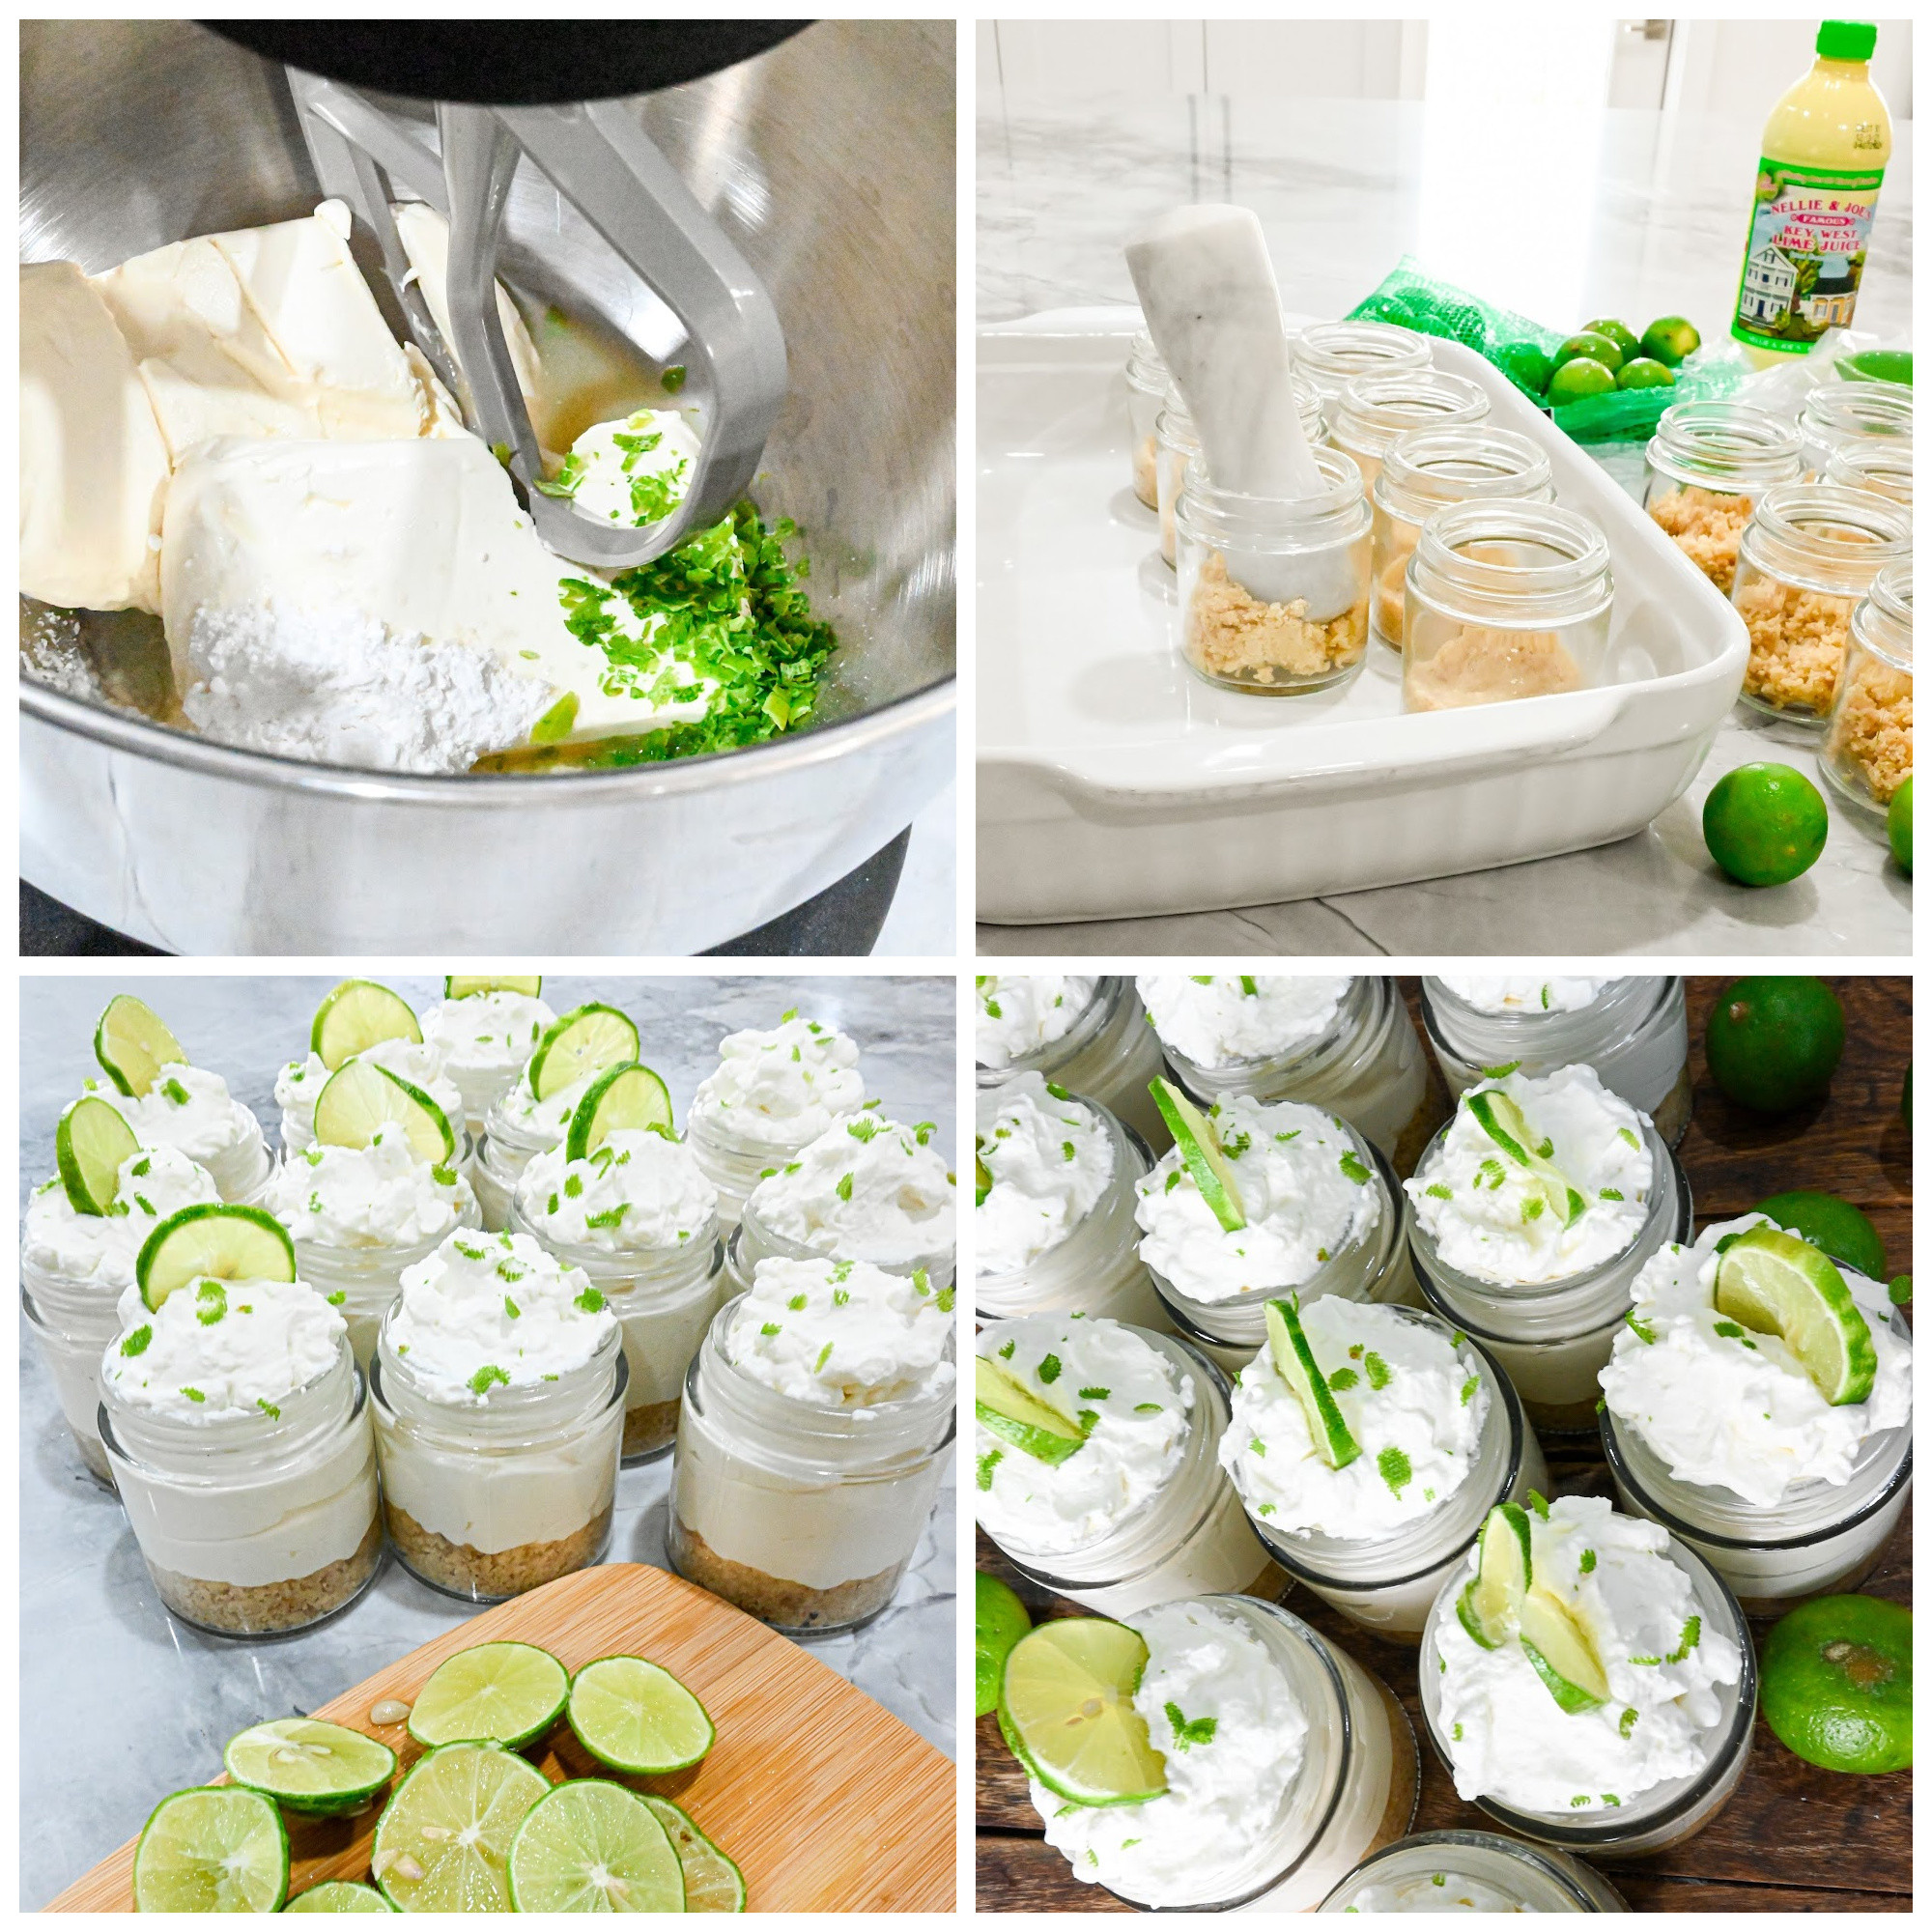 keto no bake key lime cheesecake process pictures